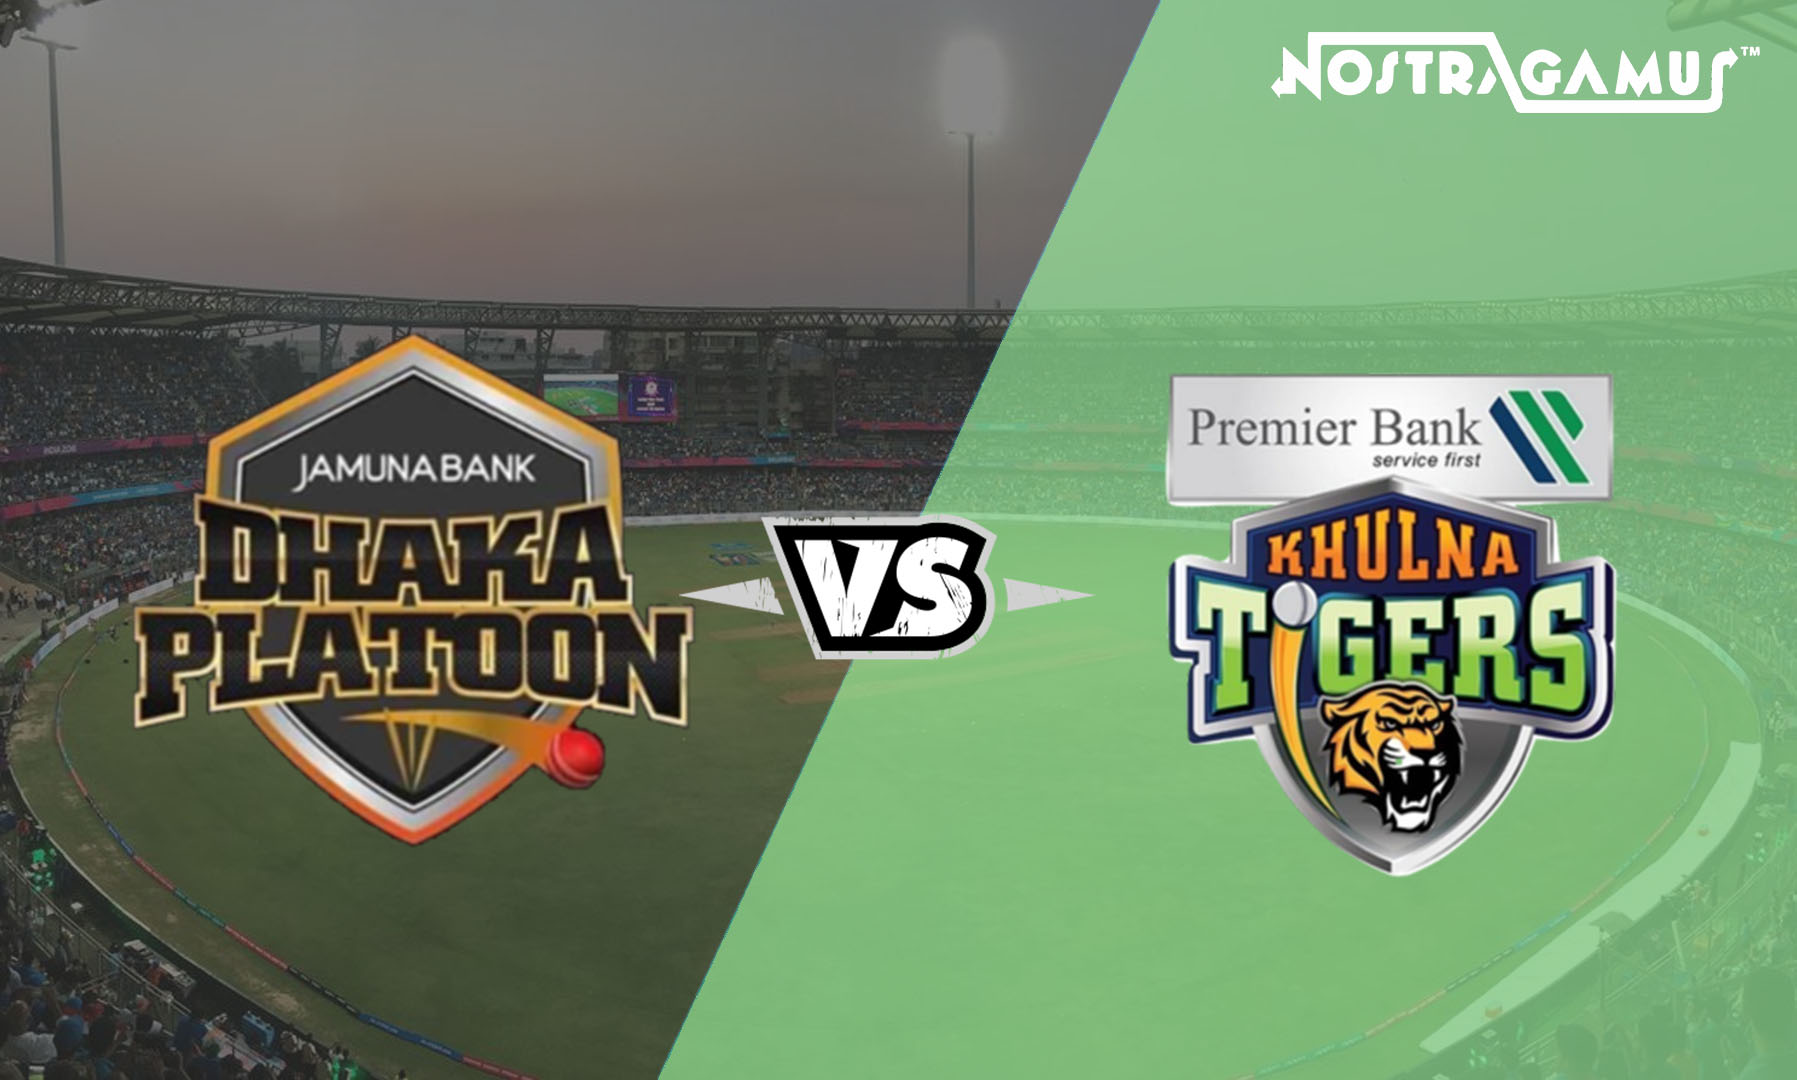 Dhaka Platoon vs Khulna Tigers: BPL 2019 Match Prediction